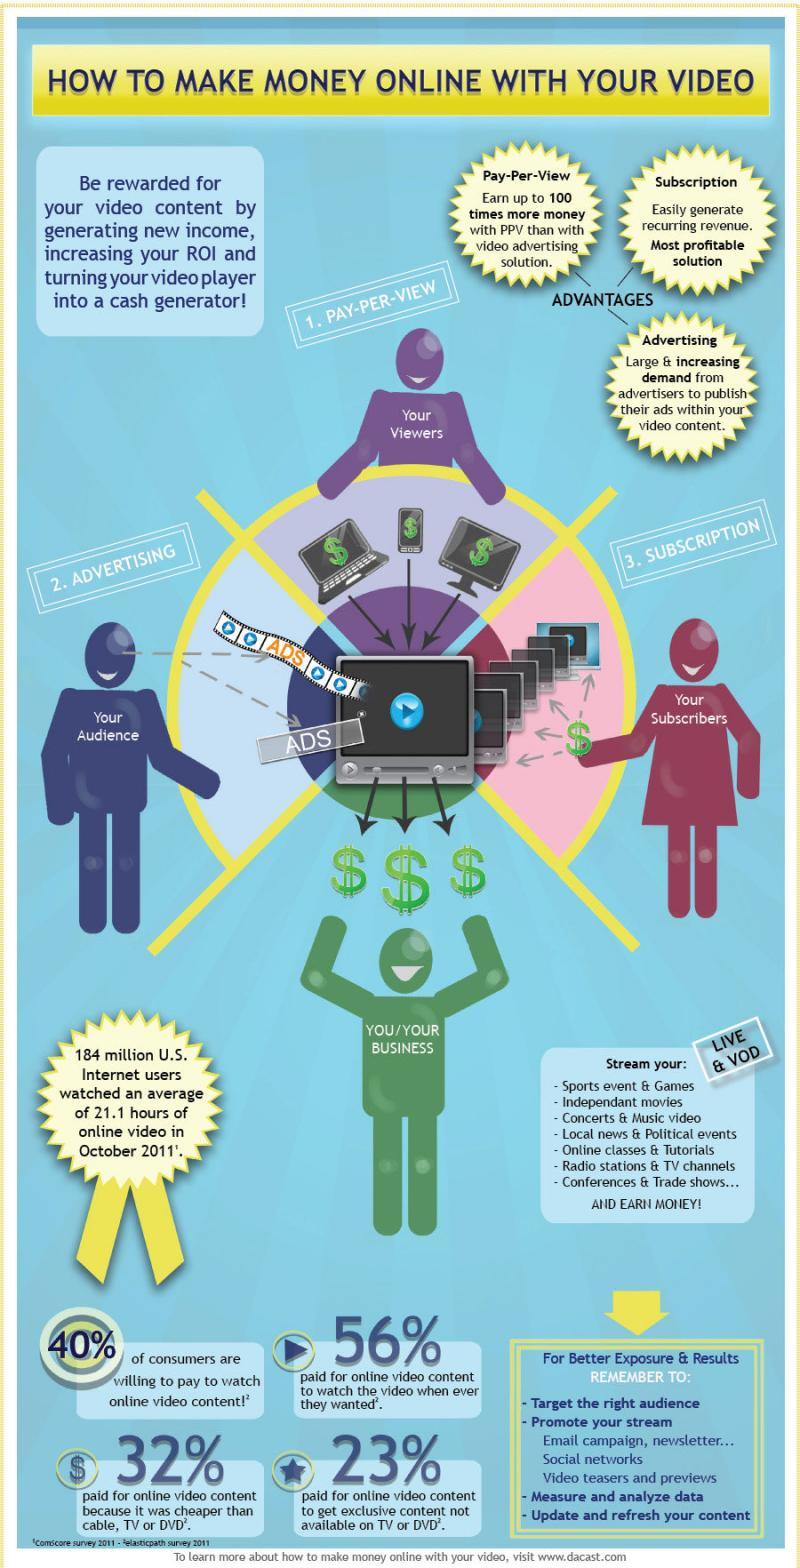 How to make money online with your video #infographic